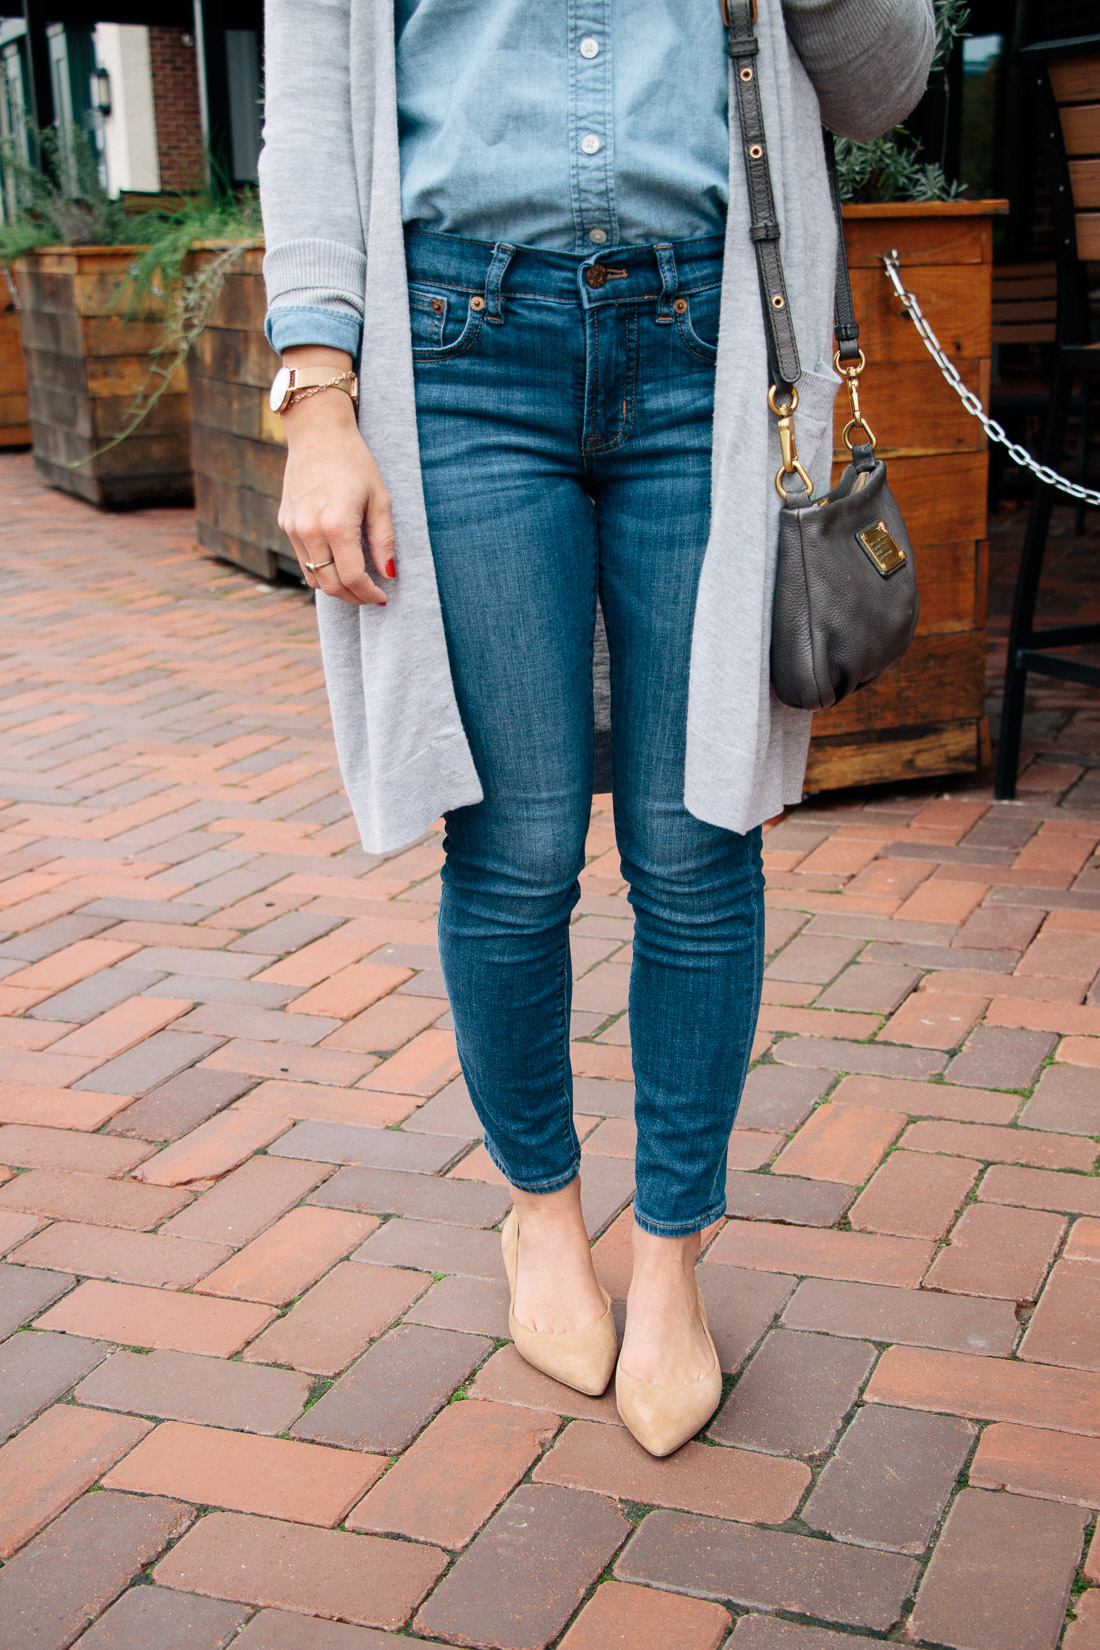 Sam Edelman Suede Flats - the perfect neutral flats